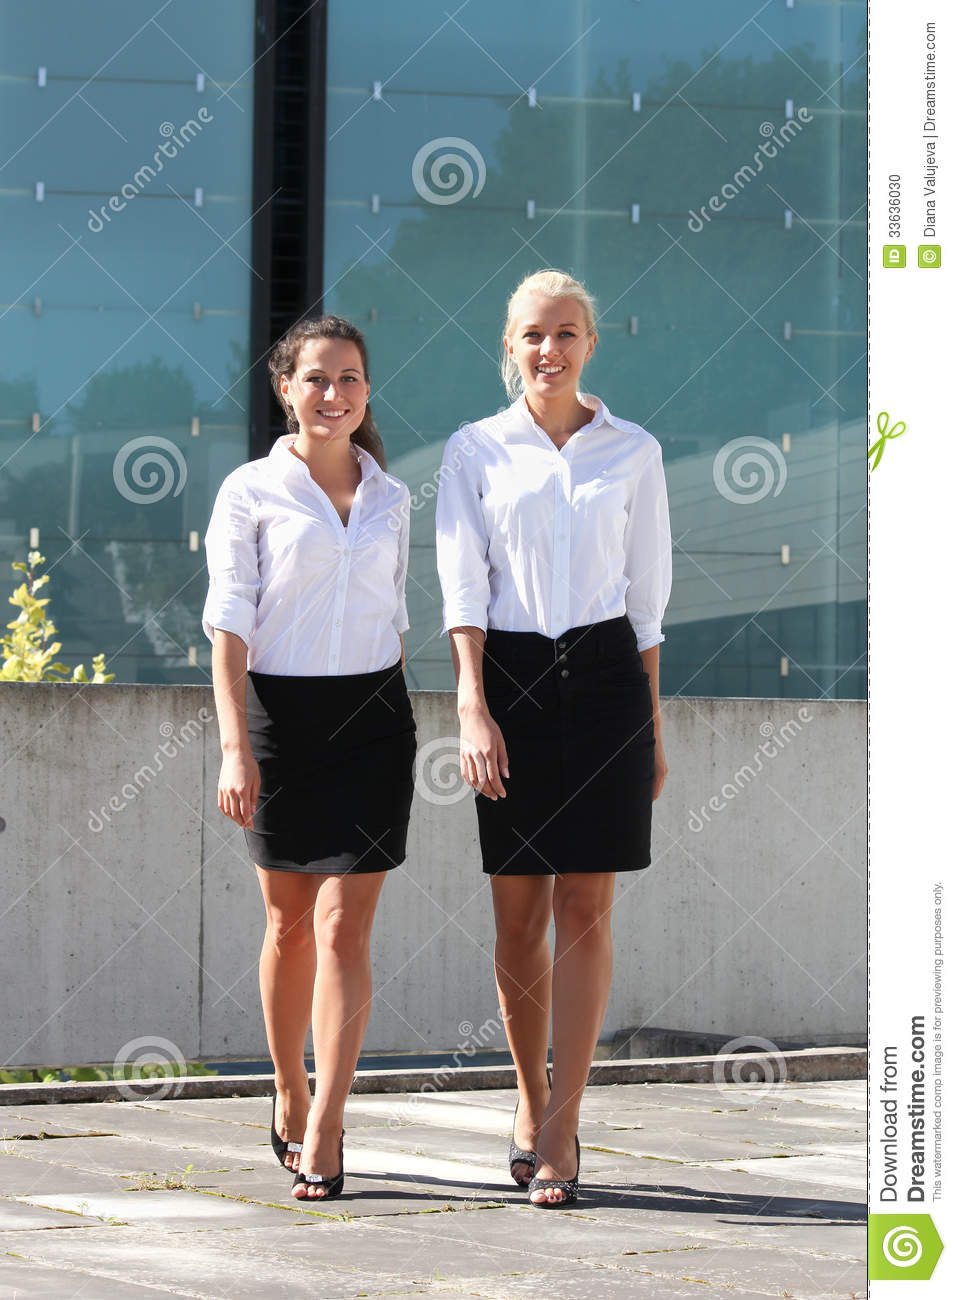 Two Young Business Women Walking In The Street Stock Photo